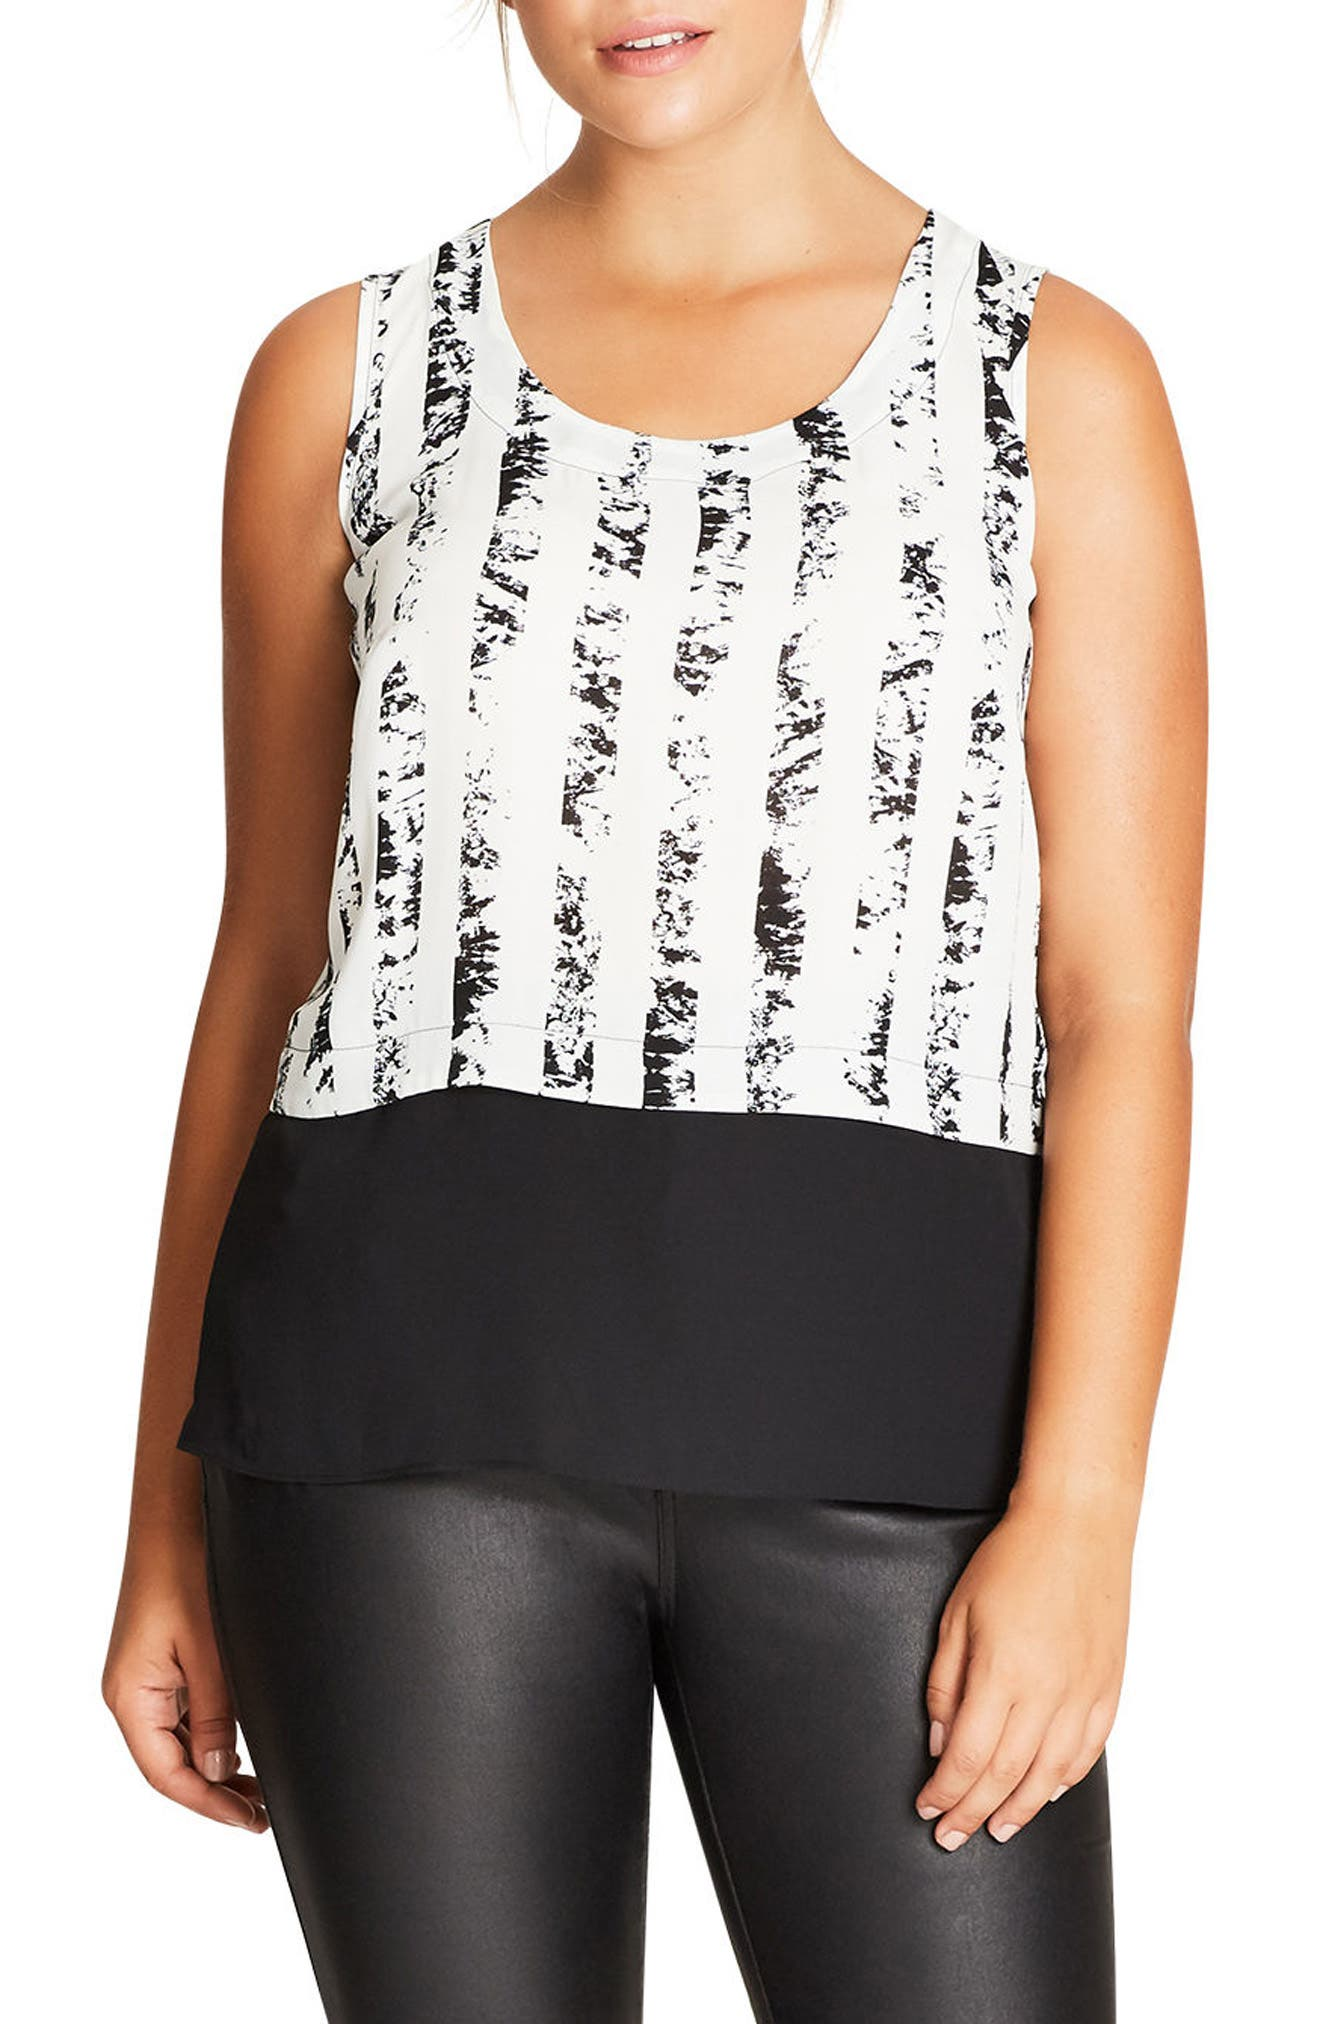 Main Image - City Chic Print Overlay Top (Plus Size)